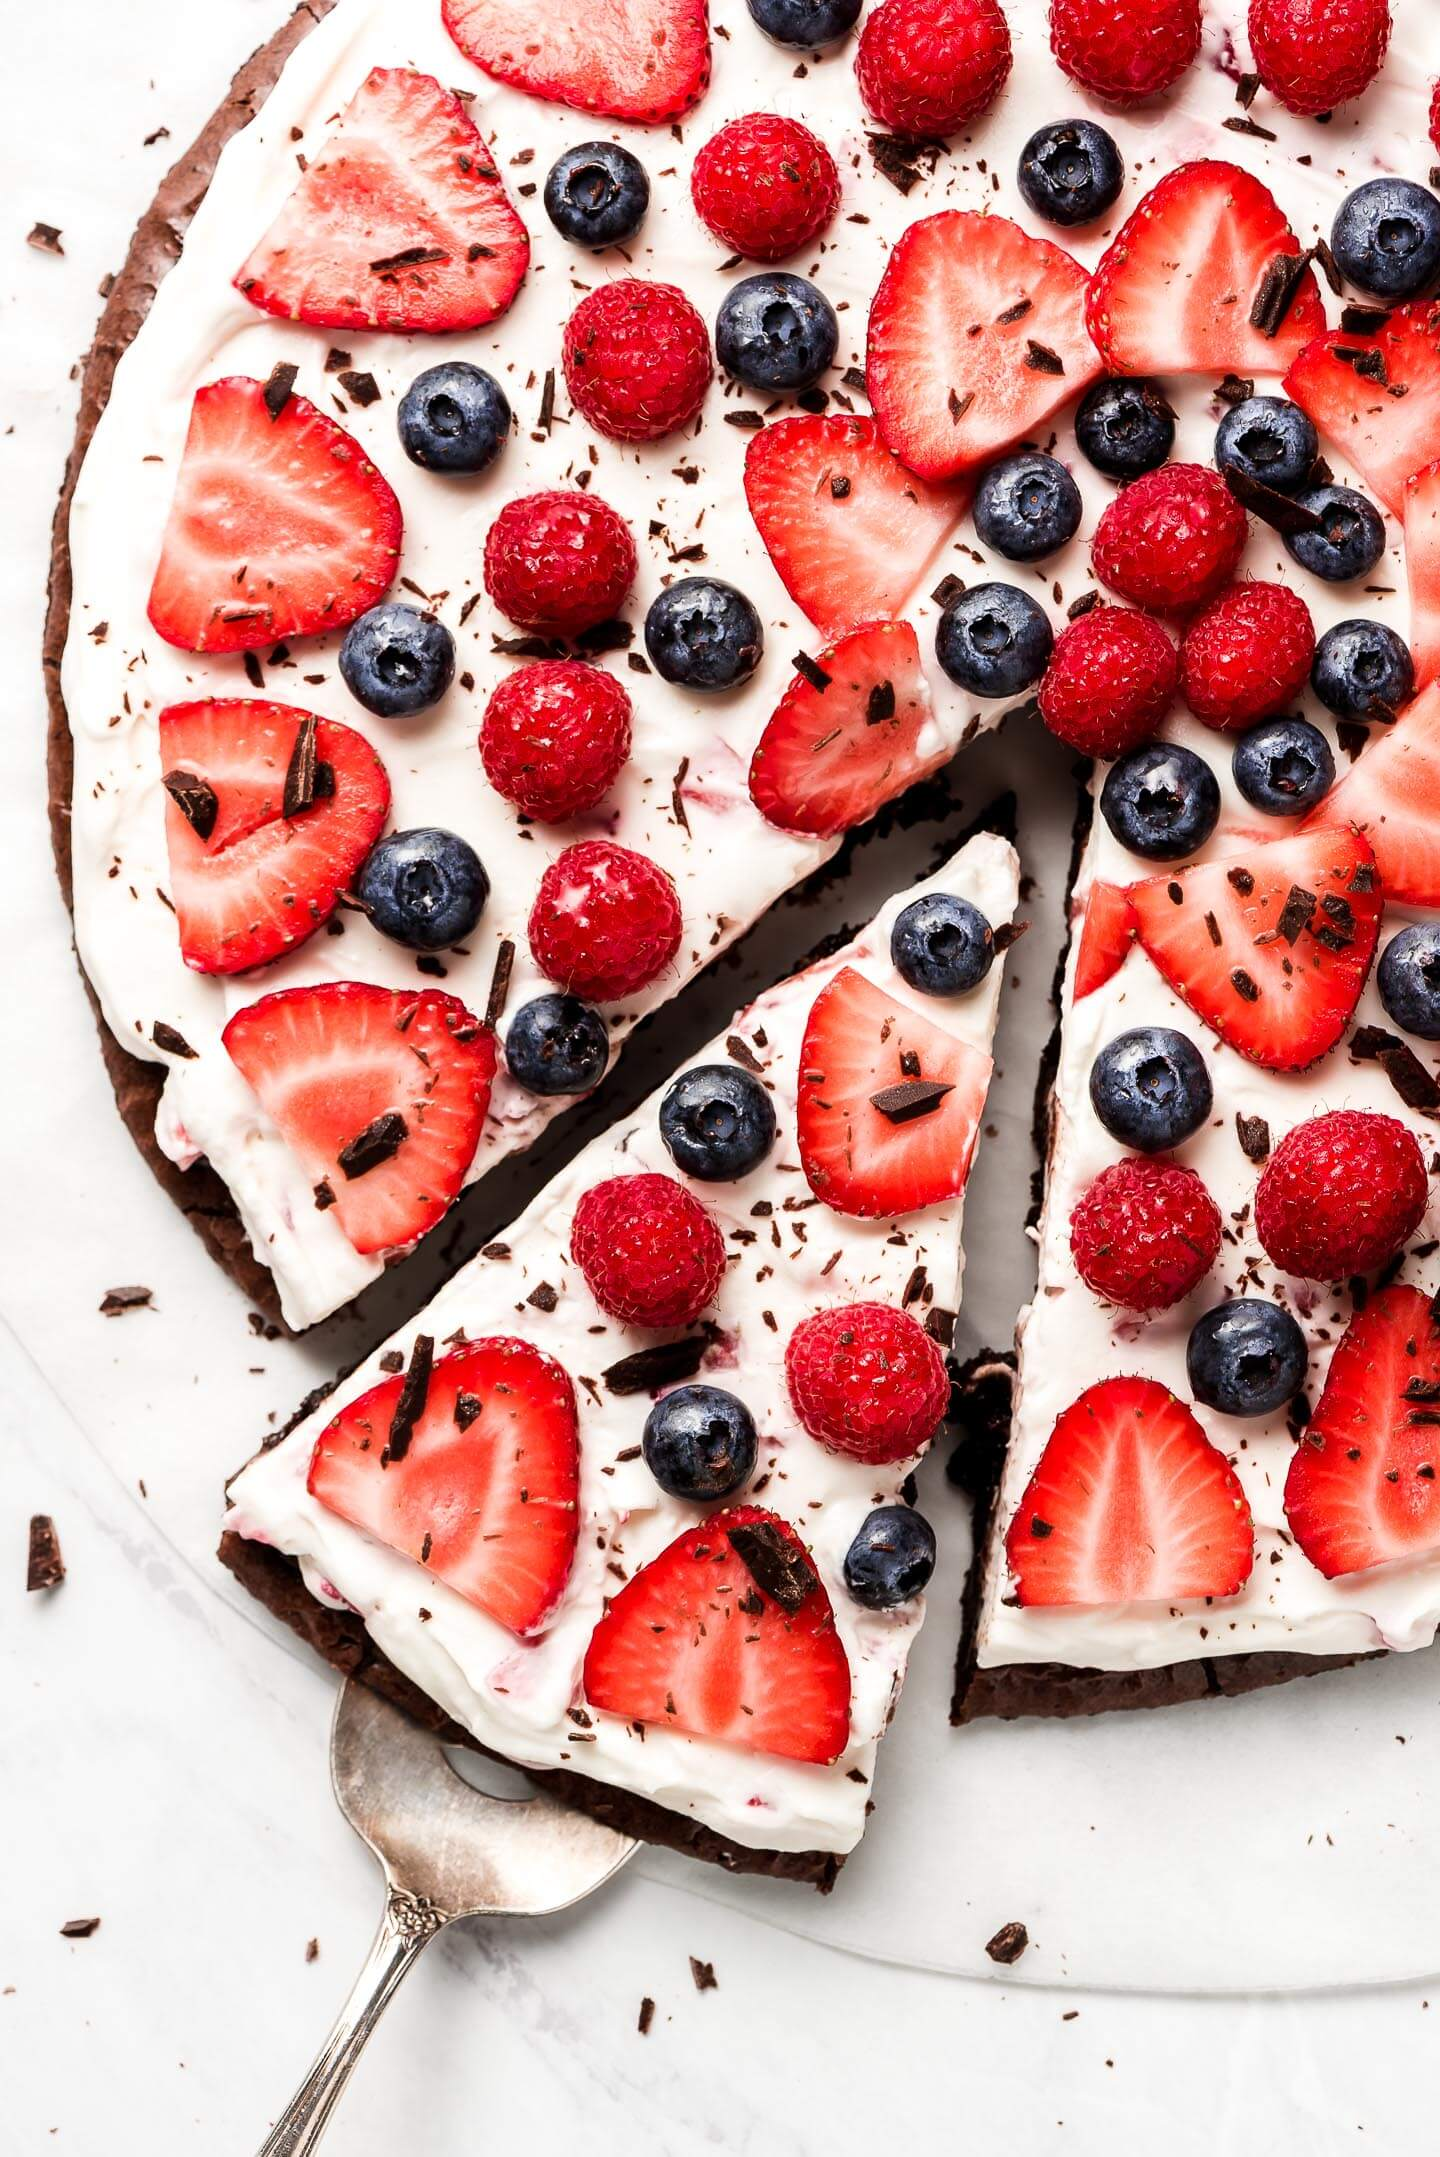 A close up shot of the top of a brownie pizza covered in fresh sliced strawberries, raspberries, and blueberries and sprinkled with finely chopped chocolate.